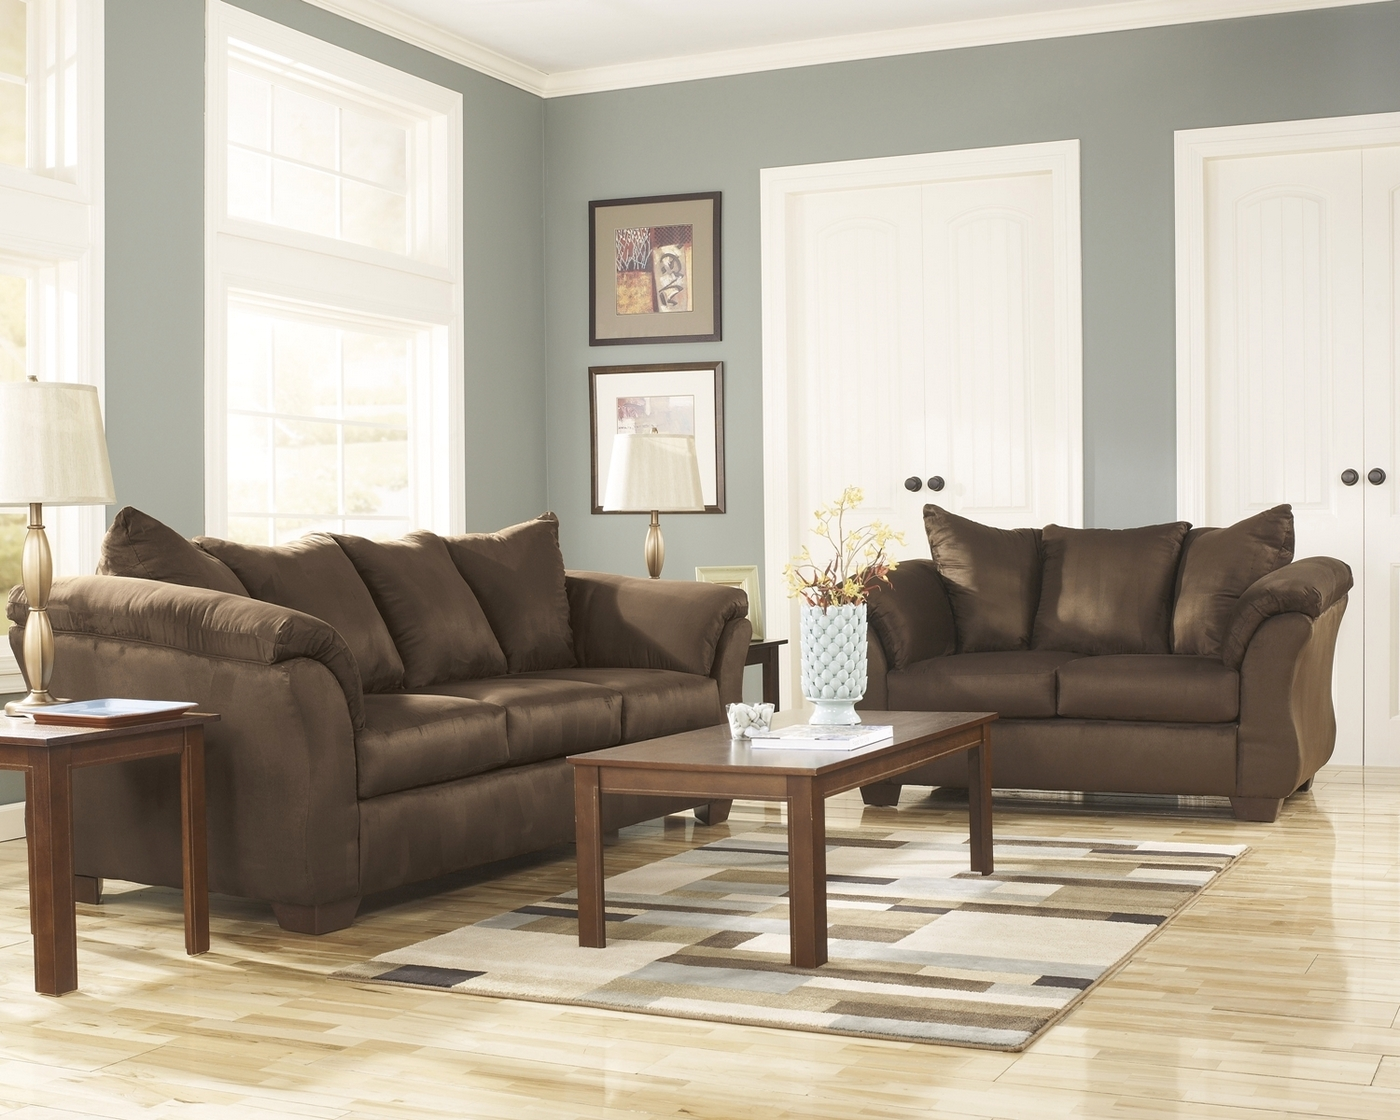 Details about luna casual chocolate cafe sleeper sofa loveseat microfiber 2pc livingroom set